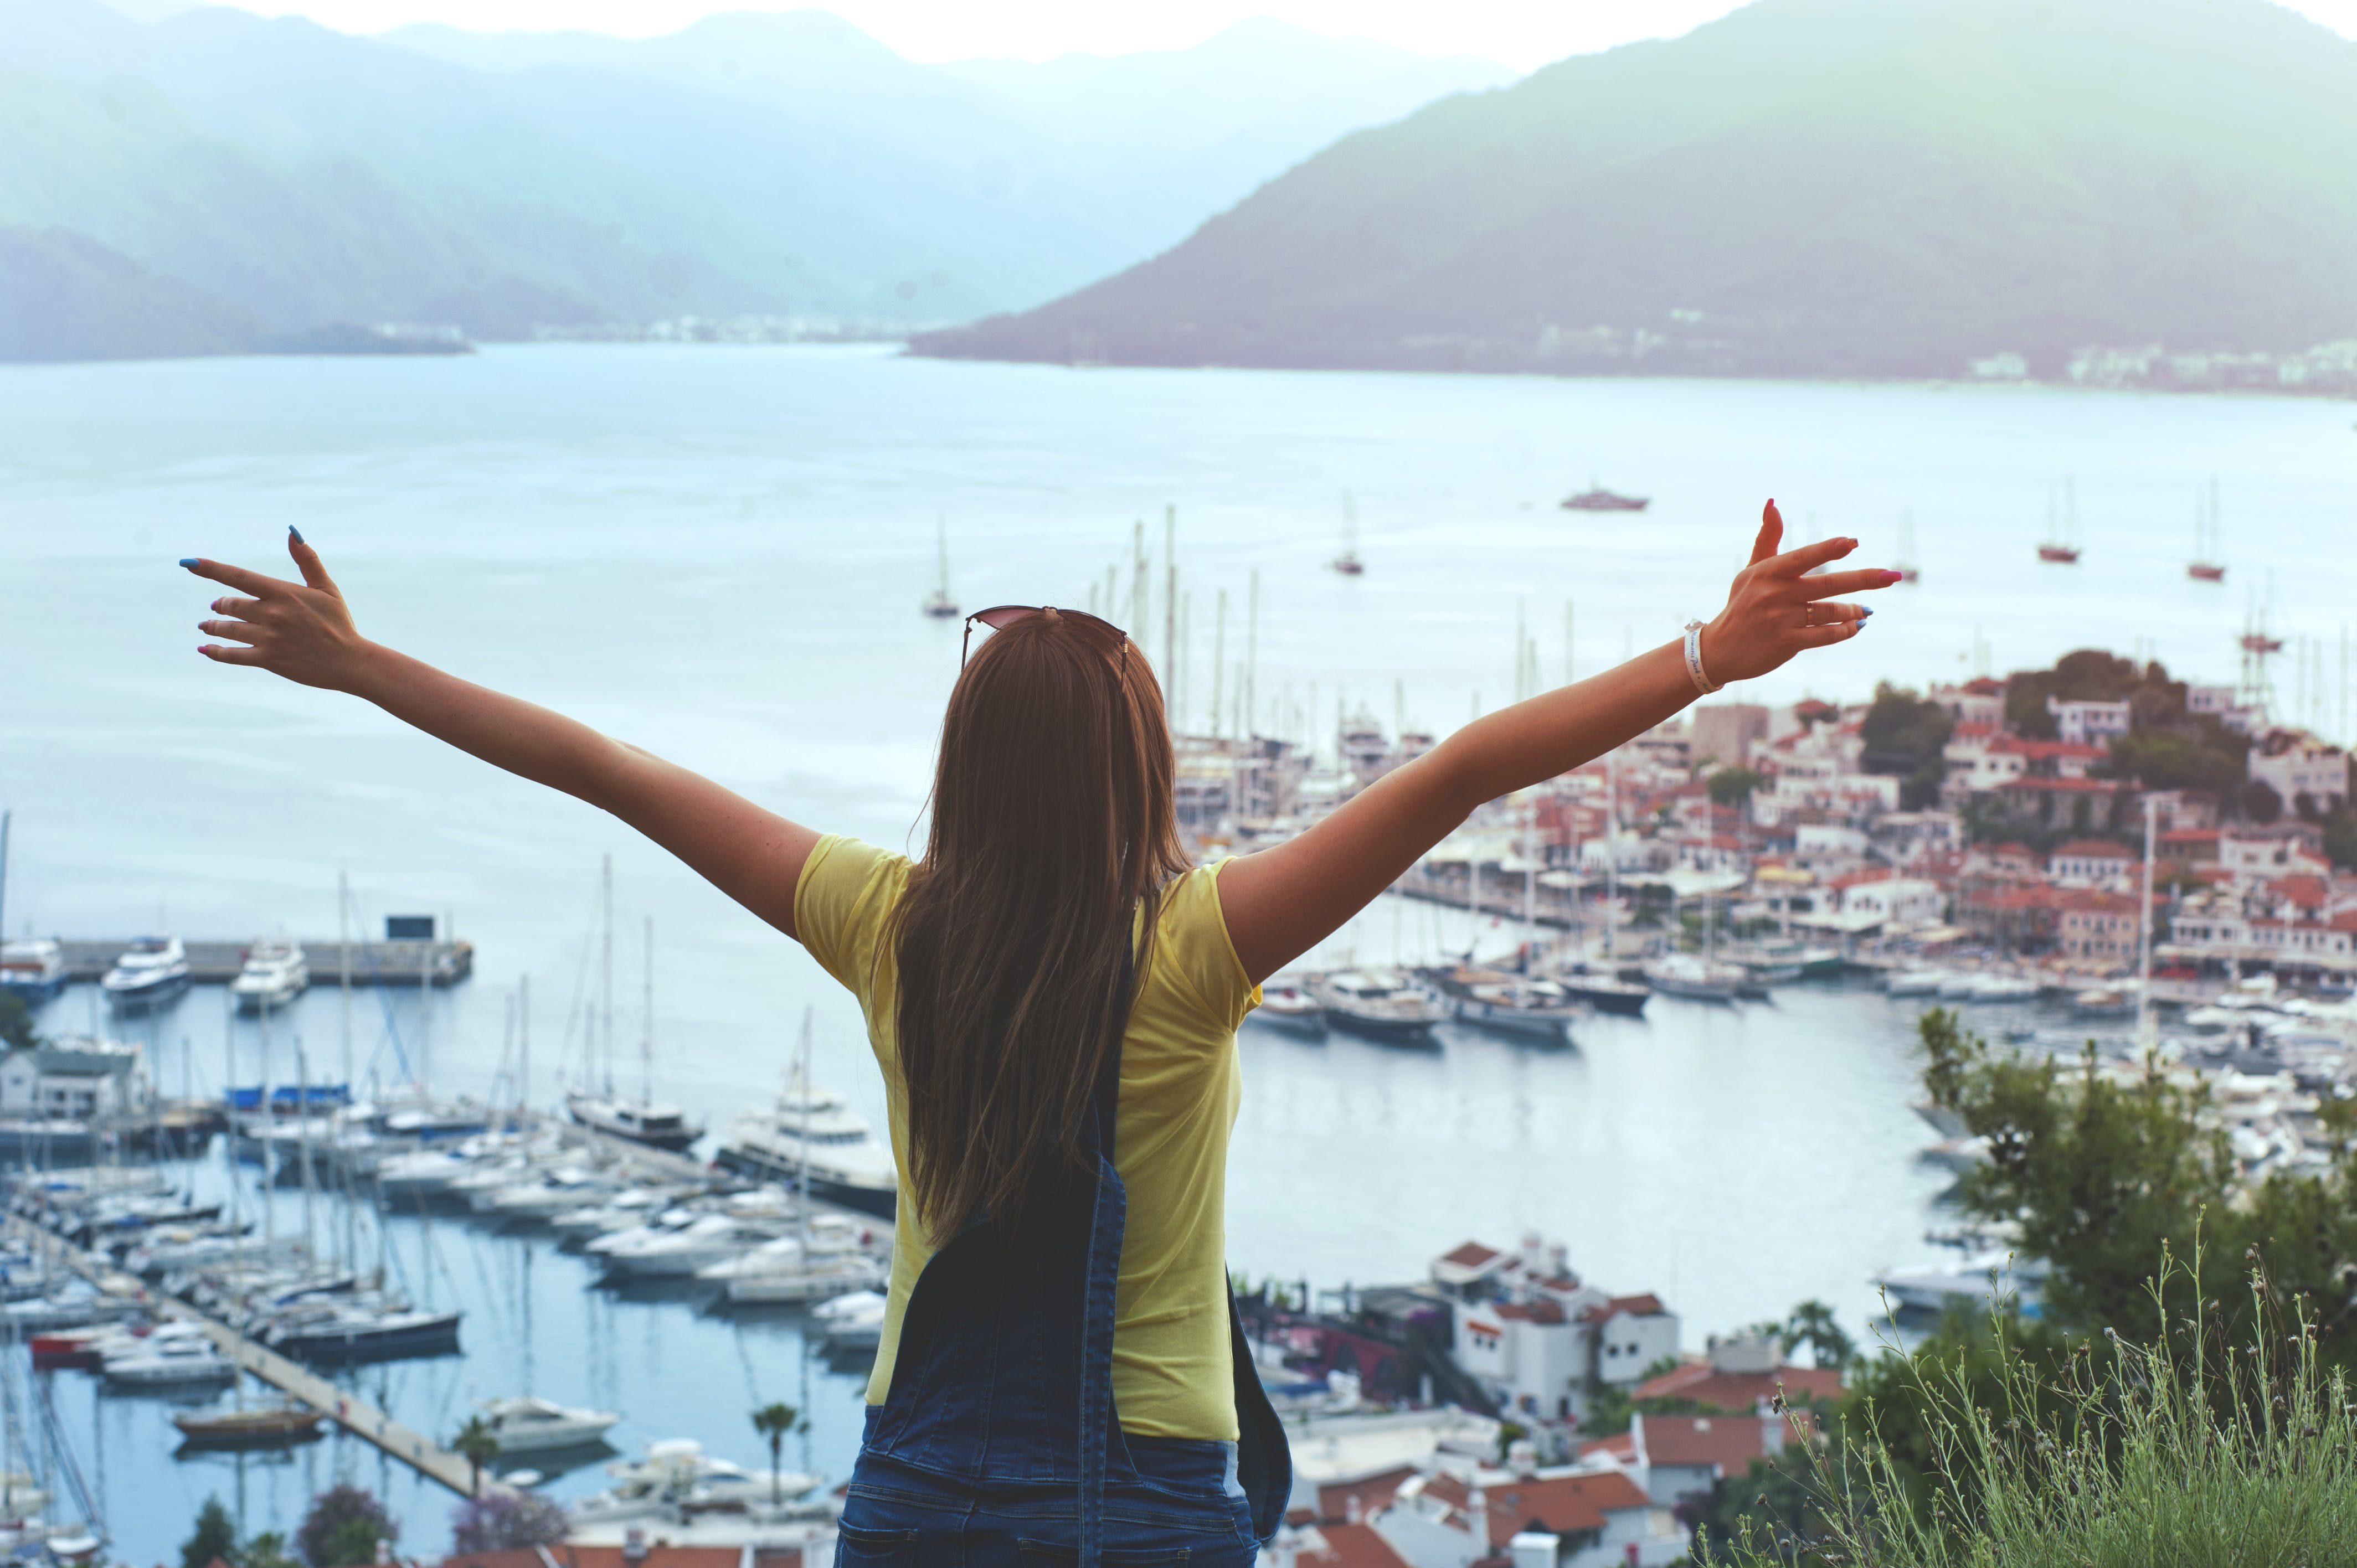 Woman Raising Her Hands Facing Cityscape Near Body of Water